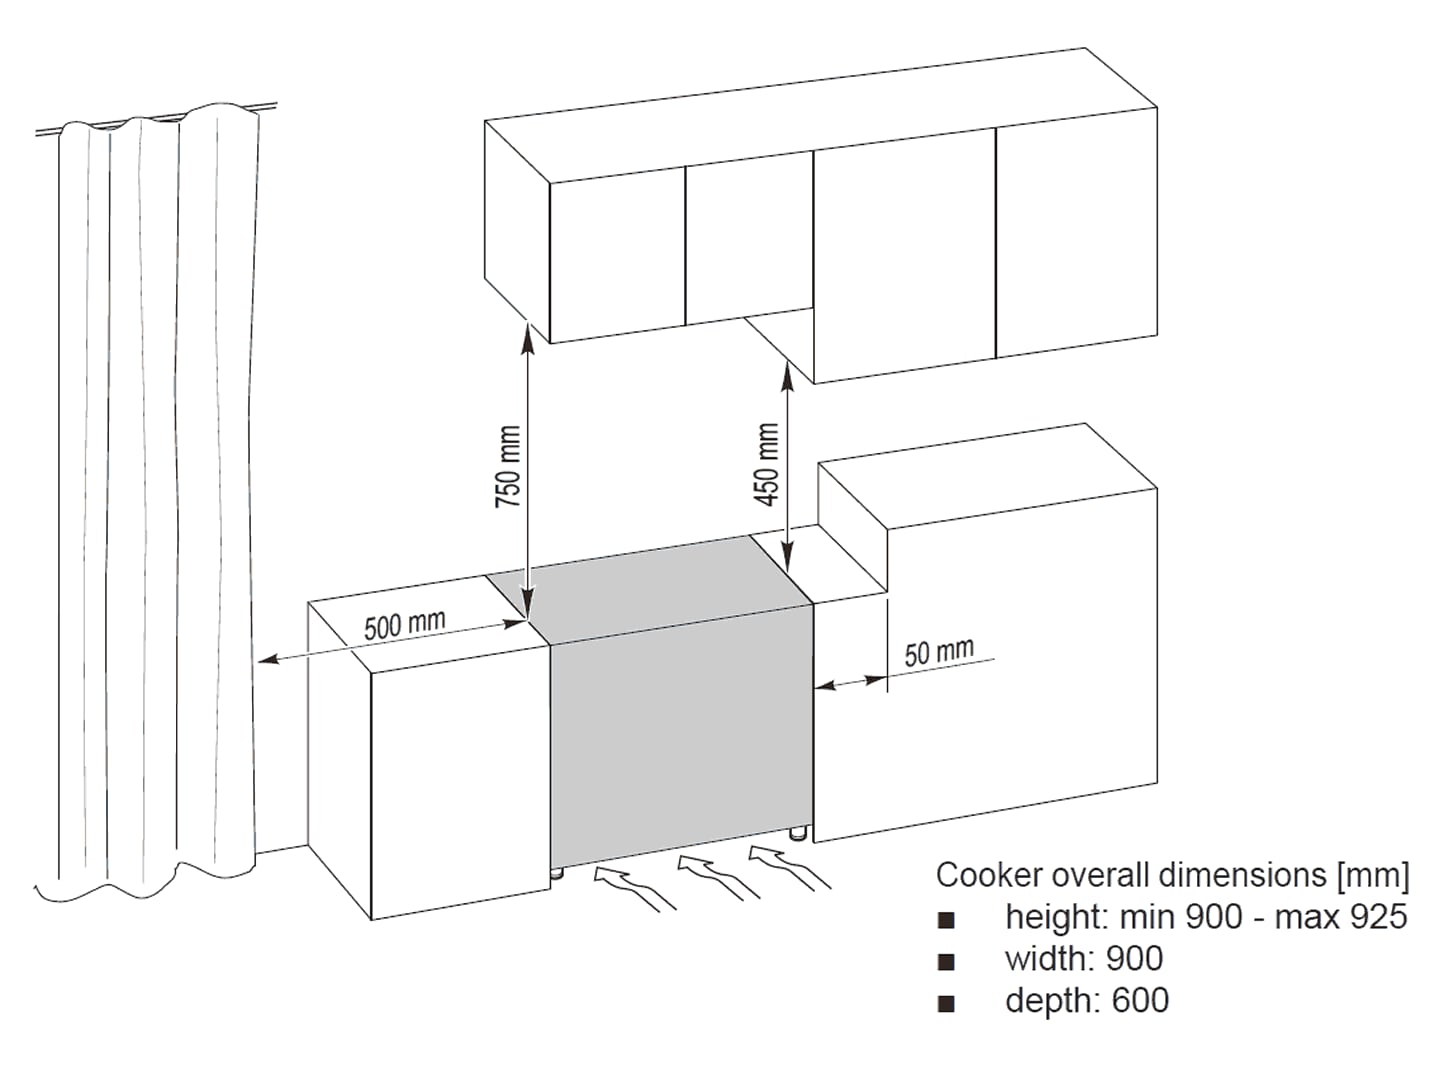 Freestanding Oven with Gas Cooktop and Wok Burner - DEF905GW1X1 - Installation Diagram